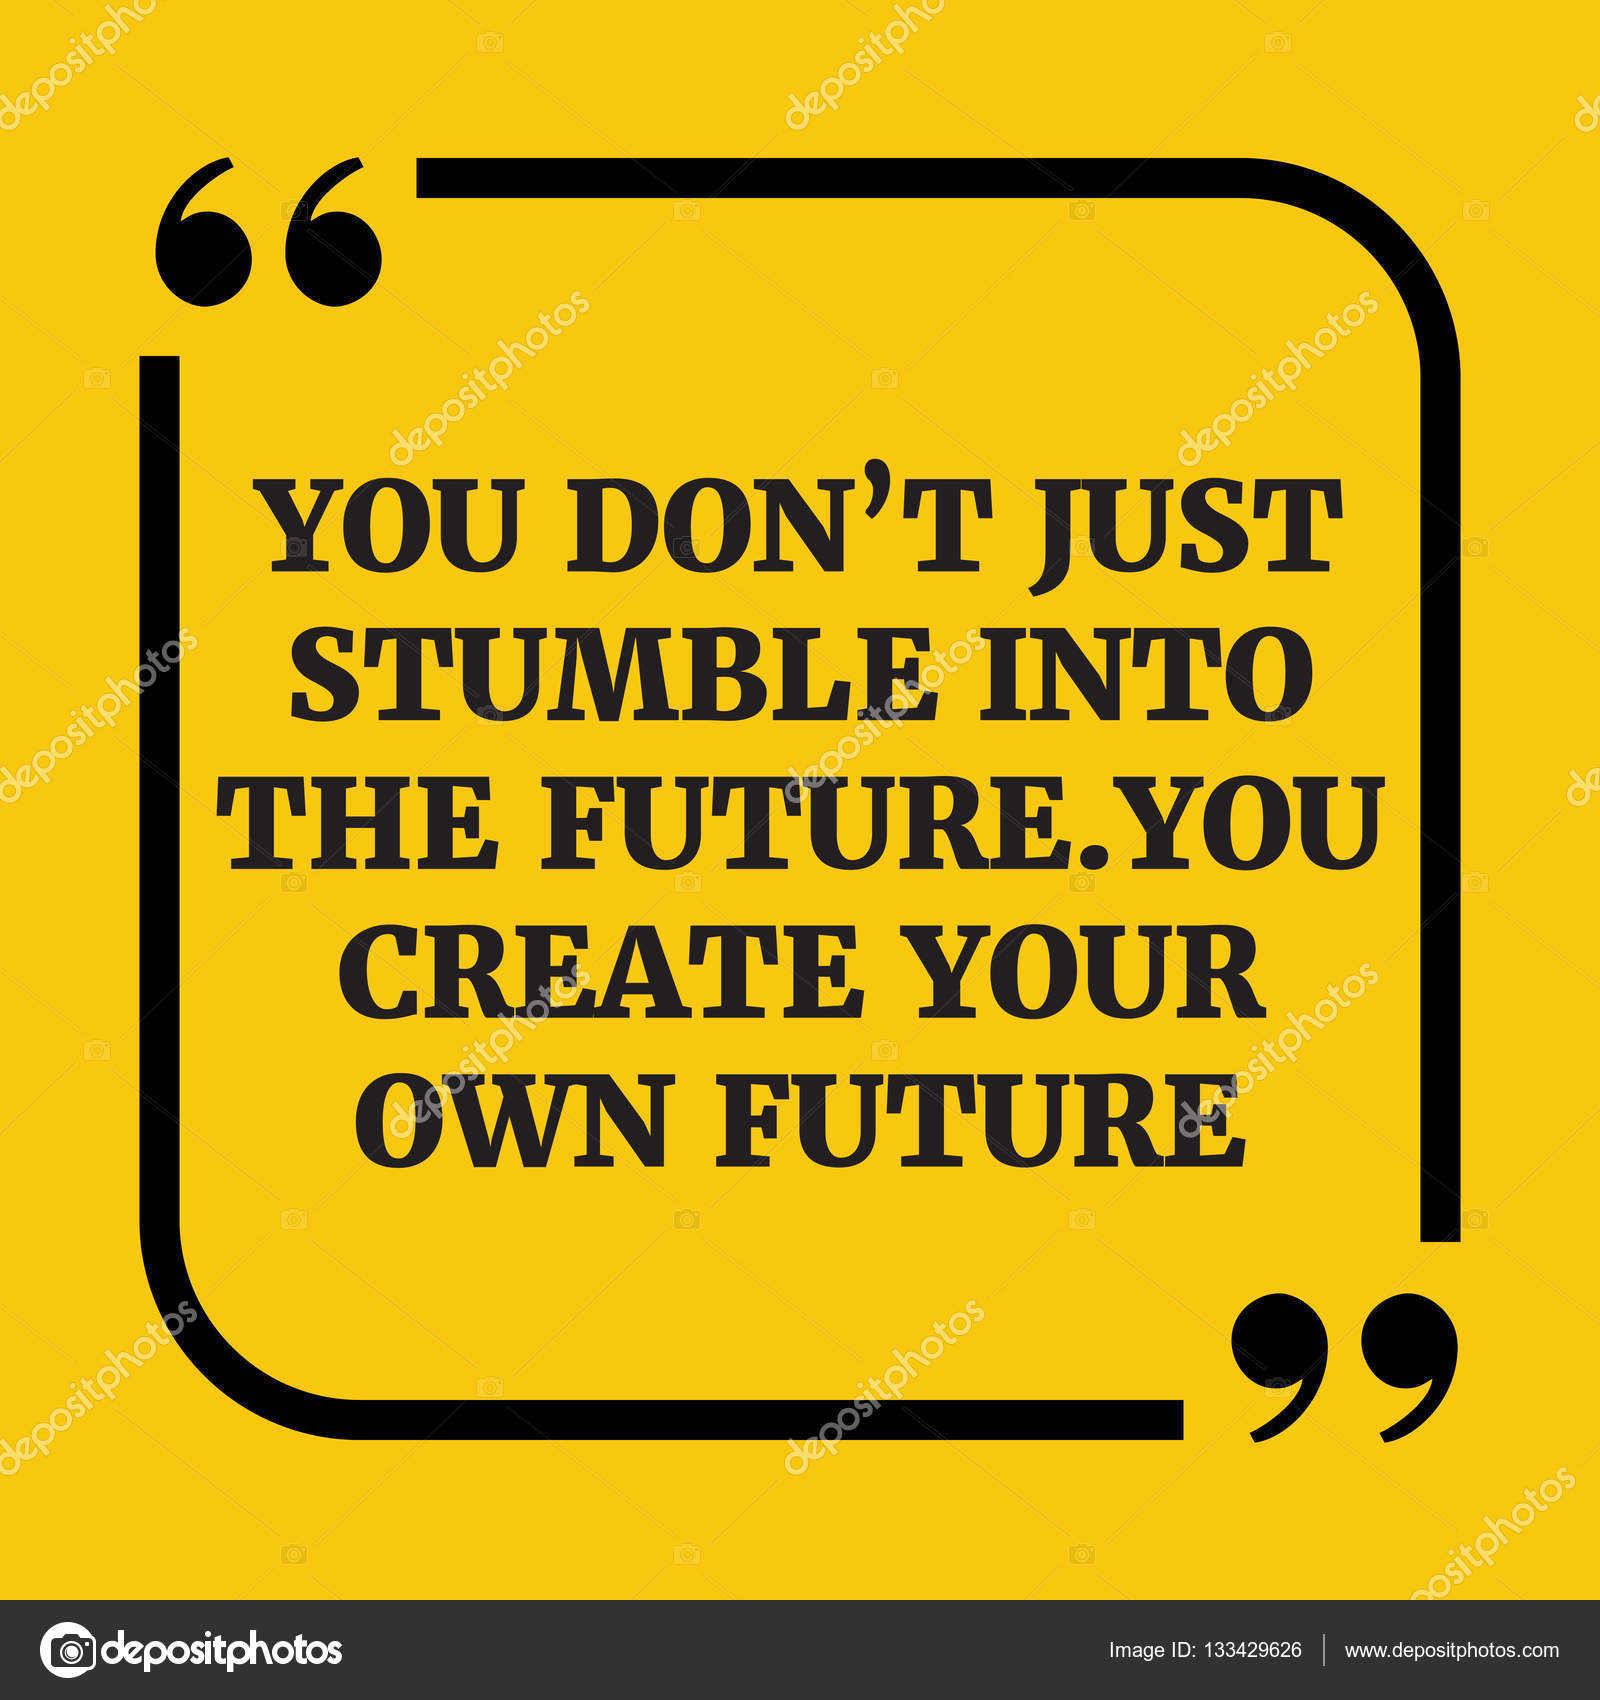 C Stock Quote Motivational Quote.you Don't Just Stumble Into The Futureyou C